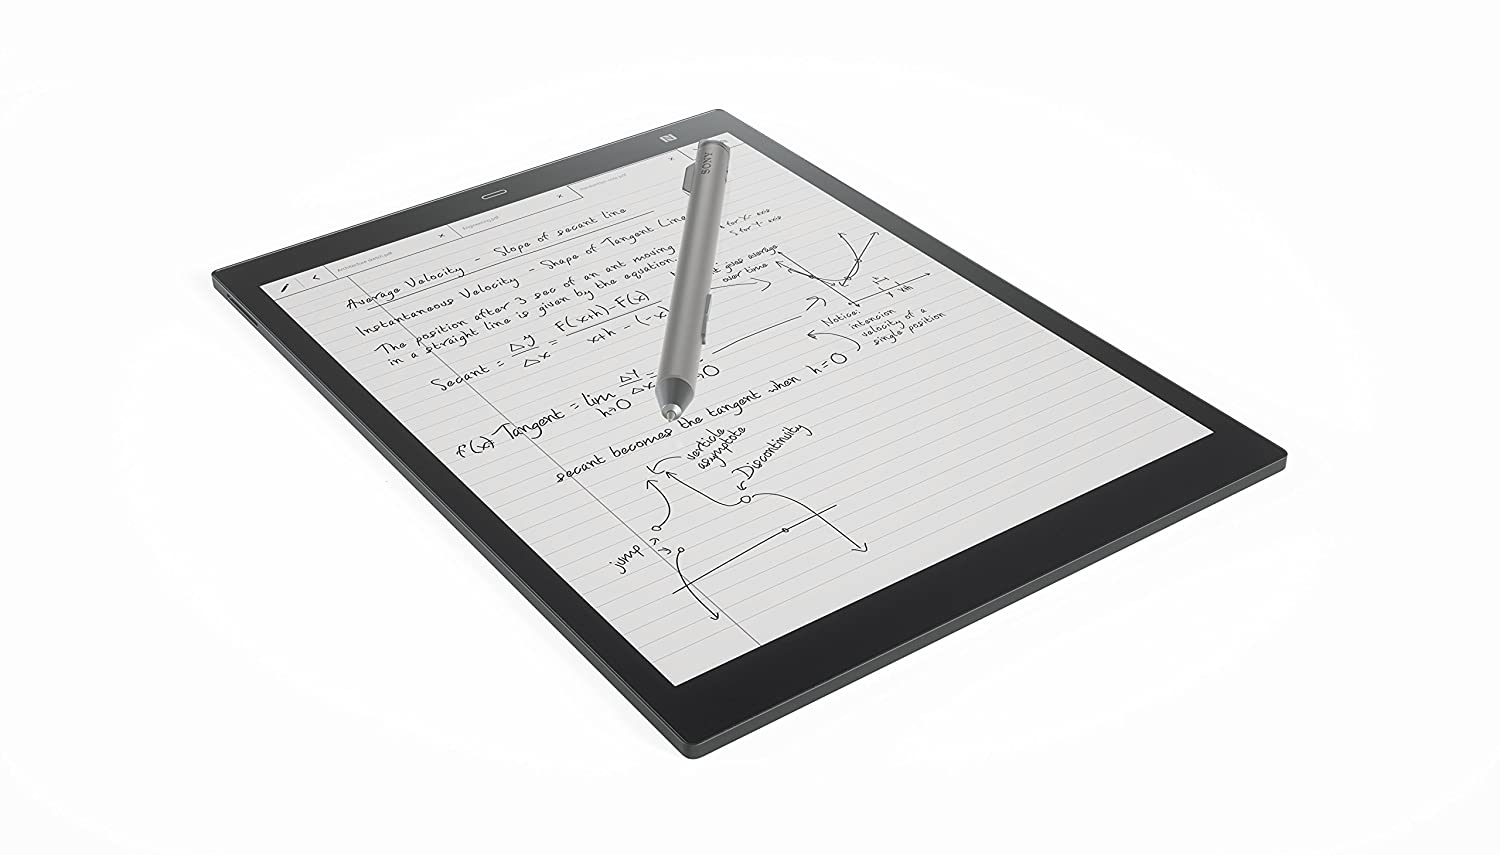 The Sony Digital Paper DPT-CP1 travel product recommended by Emily Klein on Lifney.